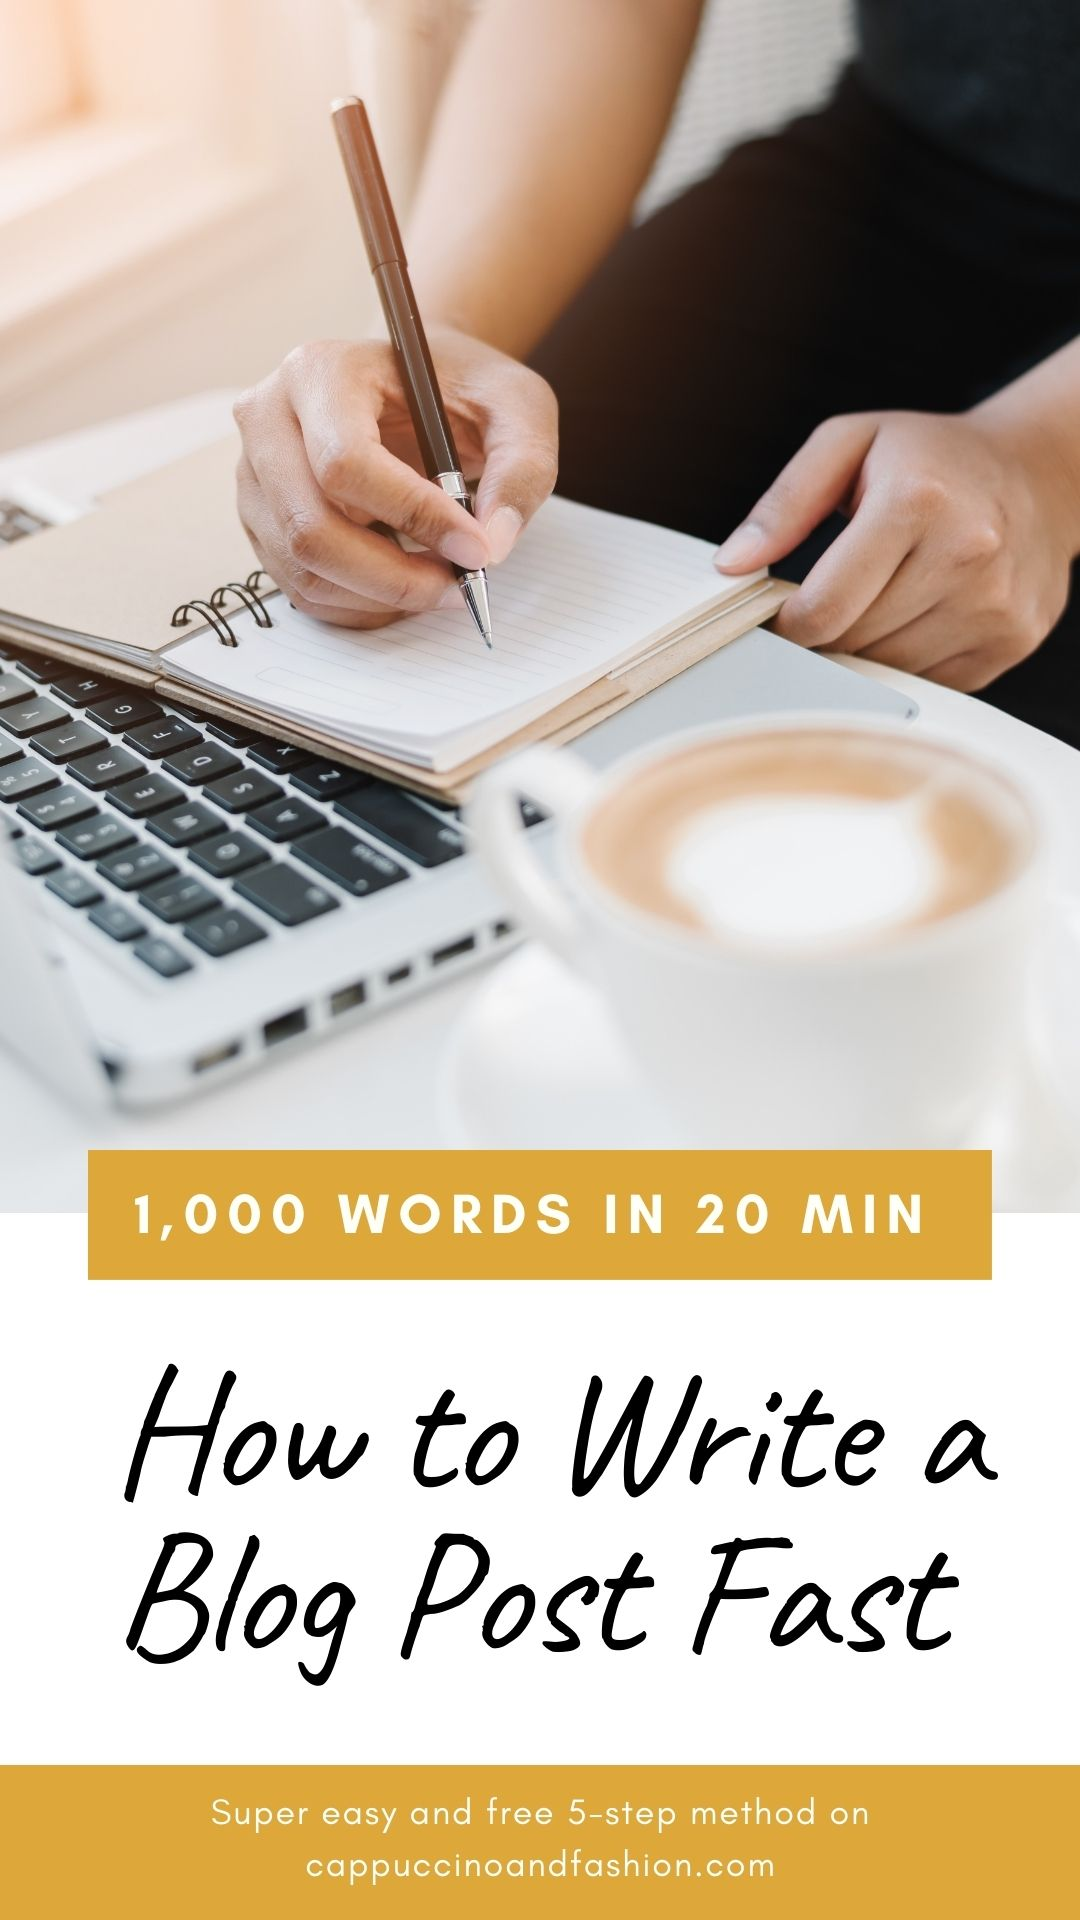 How to Write a Blog Post Fast 3000 Words in 1 Hour